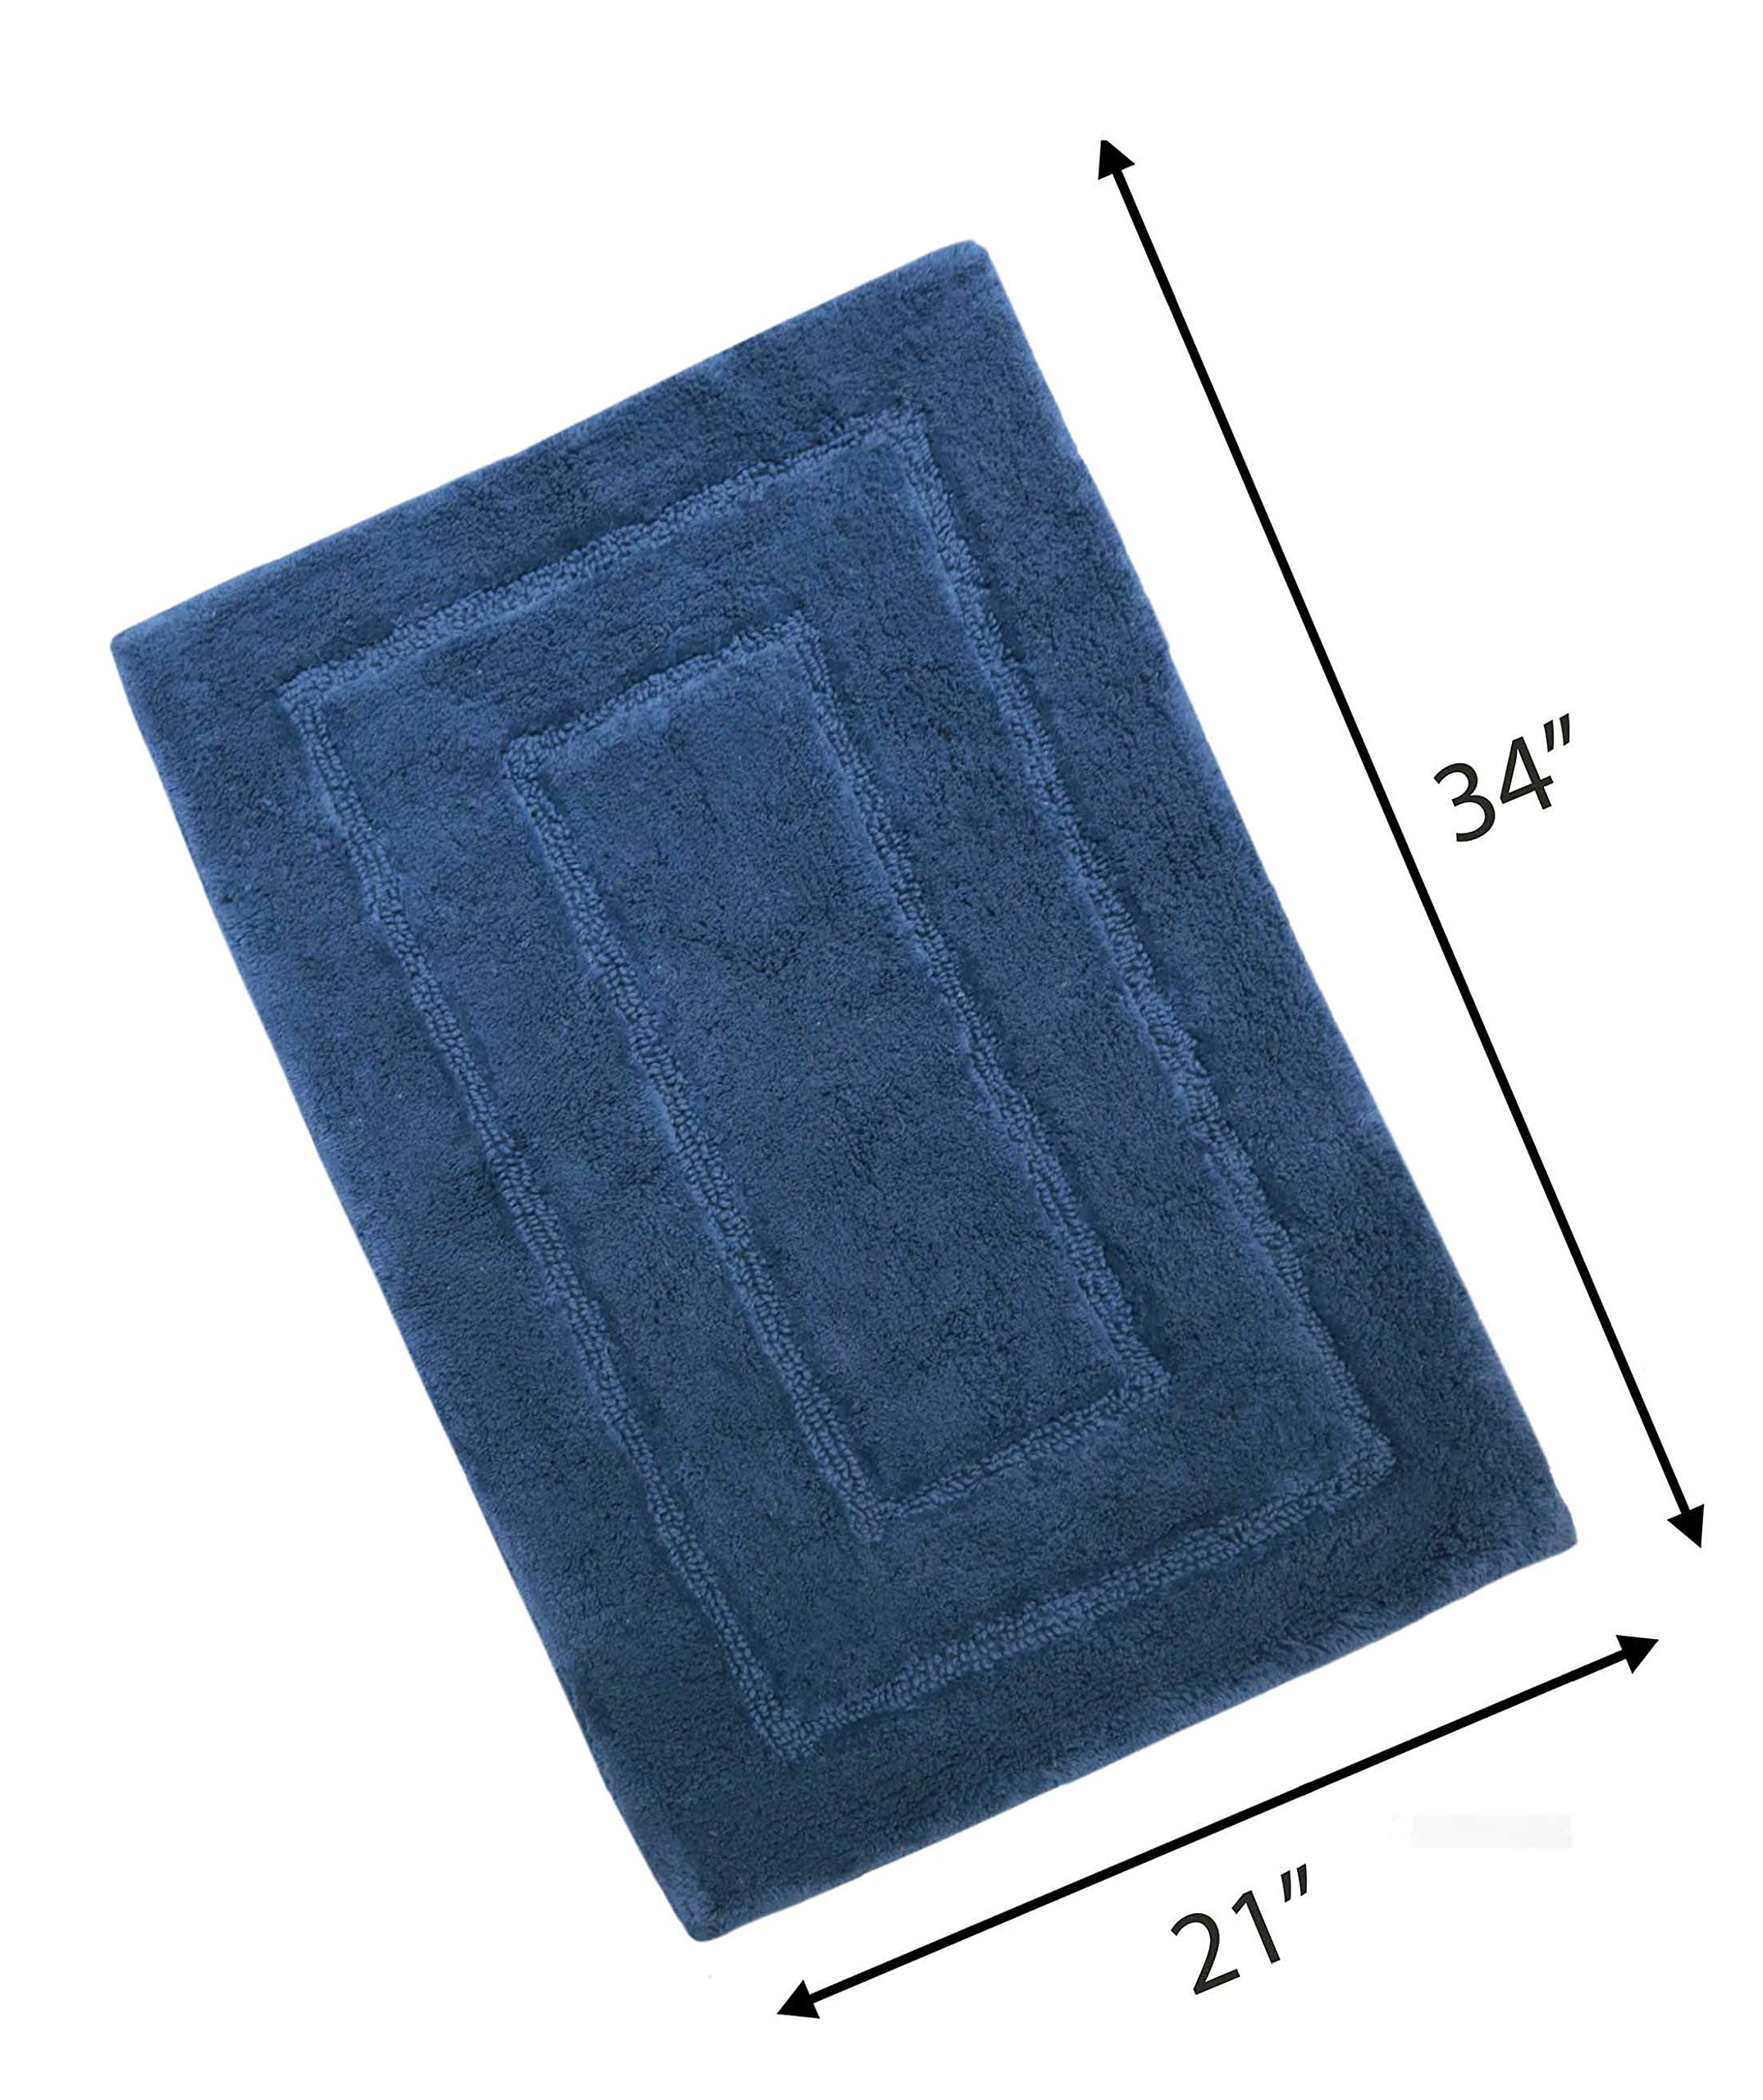 """Woven St Tufted Luxury Cotton Bath Rug Floor mat Super Soft for Spa Vanity Shower Machine Washable Bath Rug for Bathroom/Kitchen Water Absorbent Anti-Skid Bedroom Area Rug (21"""" x 34"""")- Navy"""